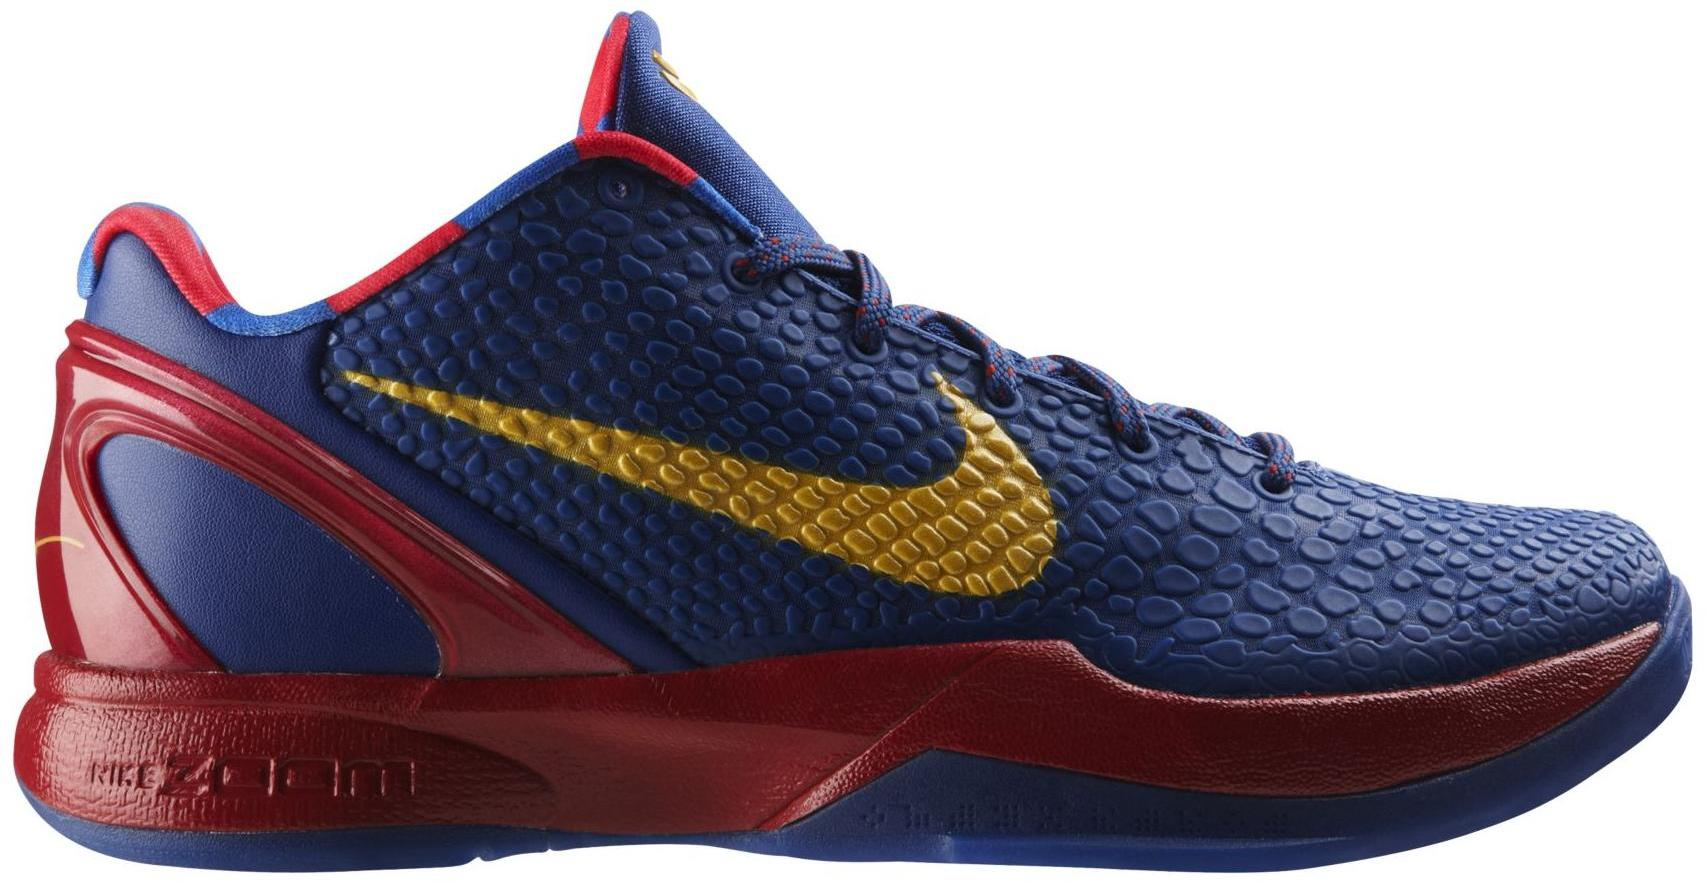 Nike Kobe 6 FC Barcelona Home Sneakers (Storm Blue/Yellow Ochre-Stream Red)